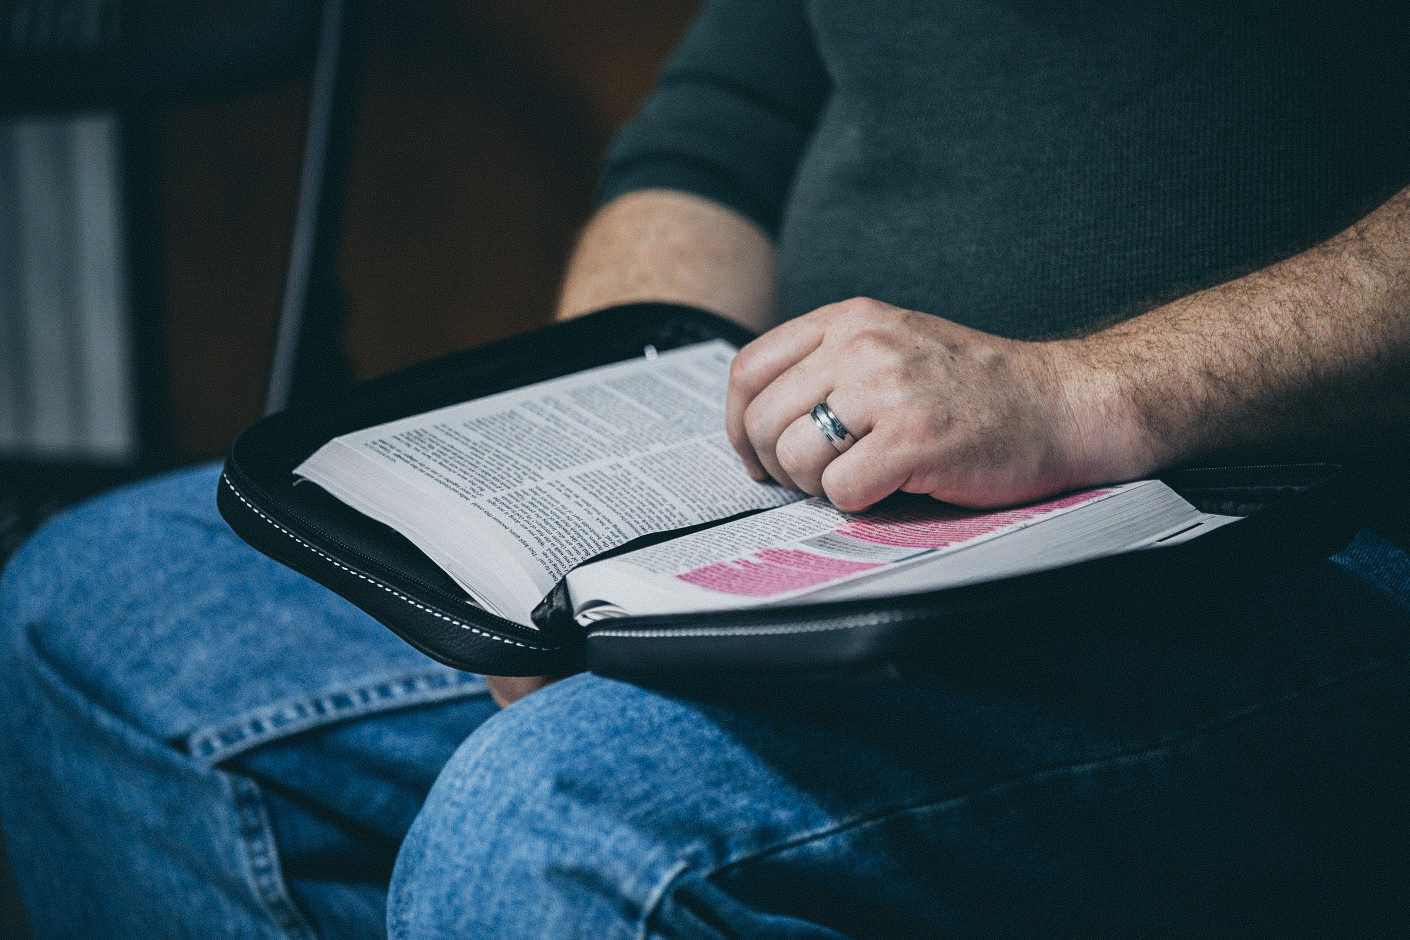 Beliefs - See how we view God, Jesus, the Bible, man, and many significant aspects of our faith. Firmly rooted in Scripture, the beliefs of Little Flock guide our decisions as a church.